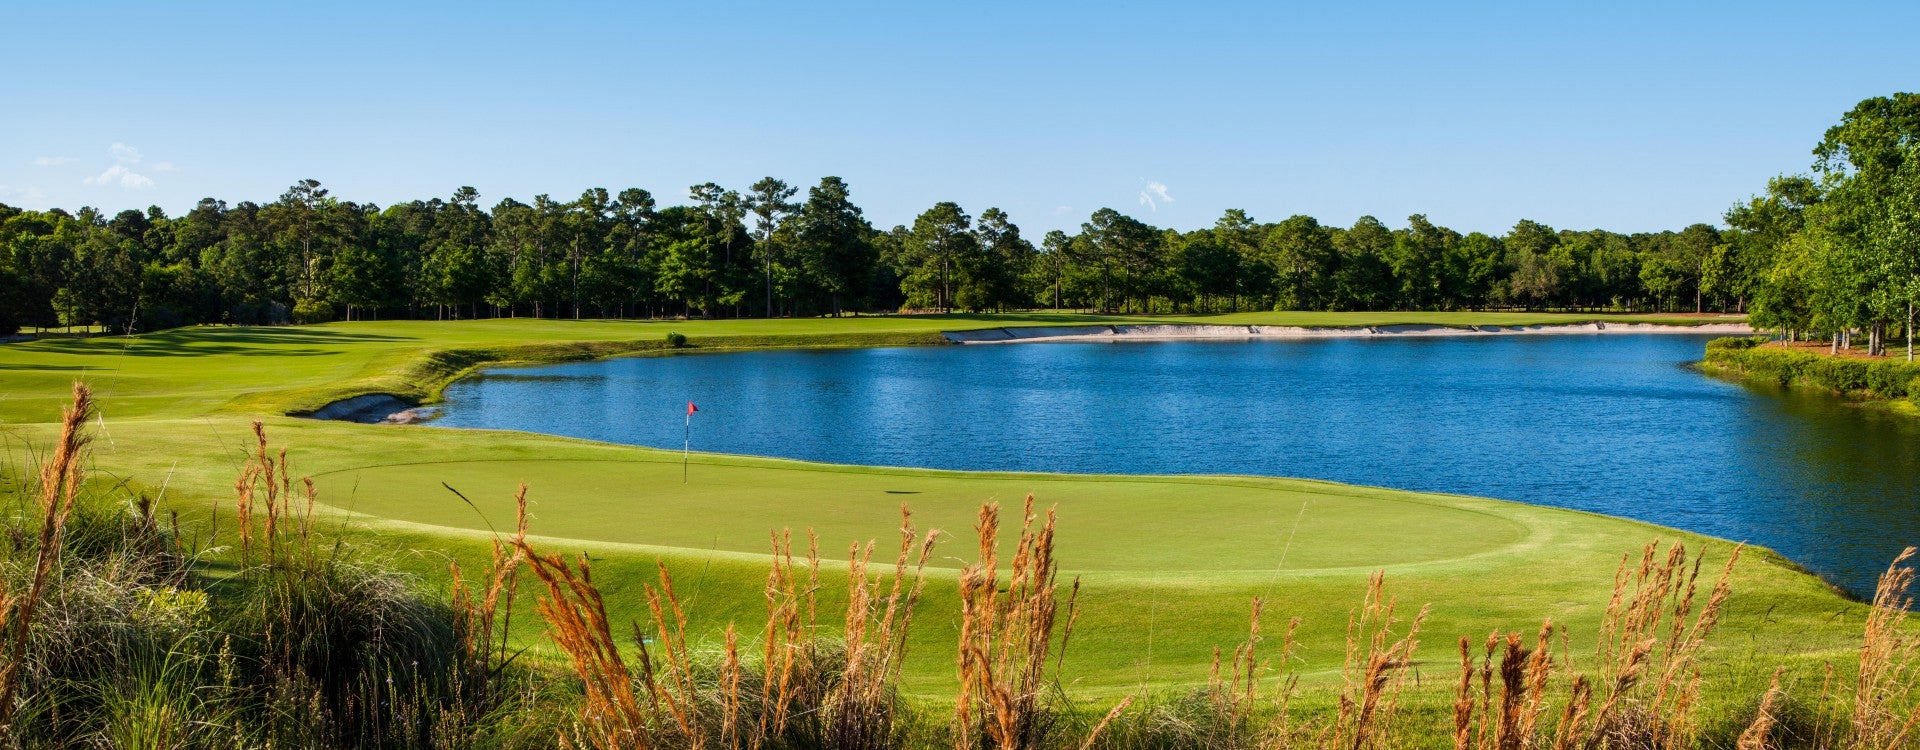 The Best Golf Courses Near Myrtle Beach